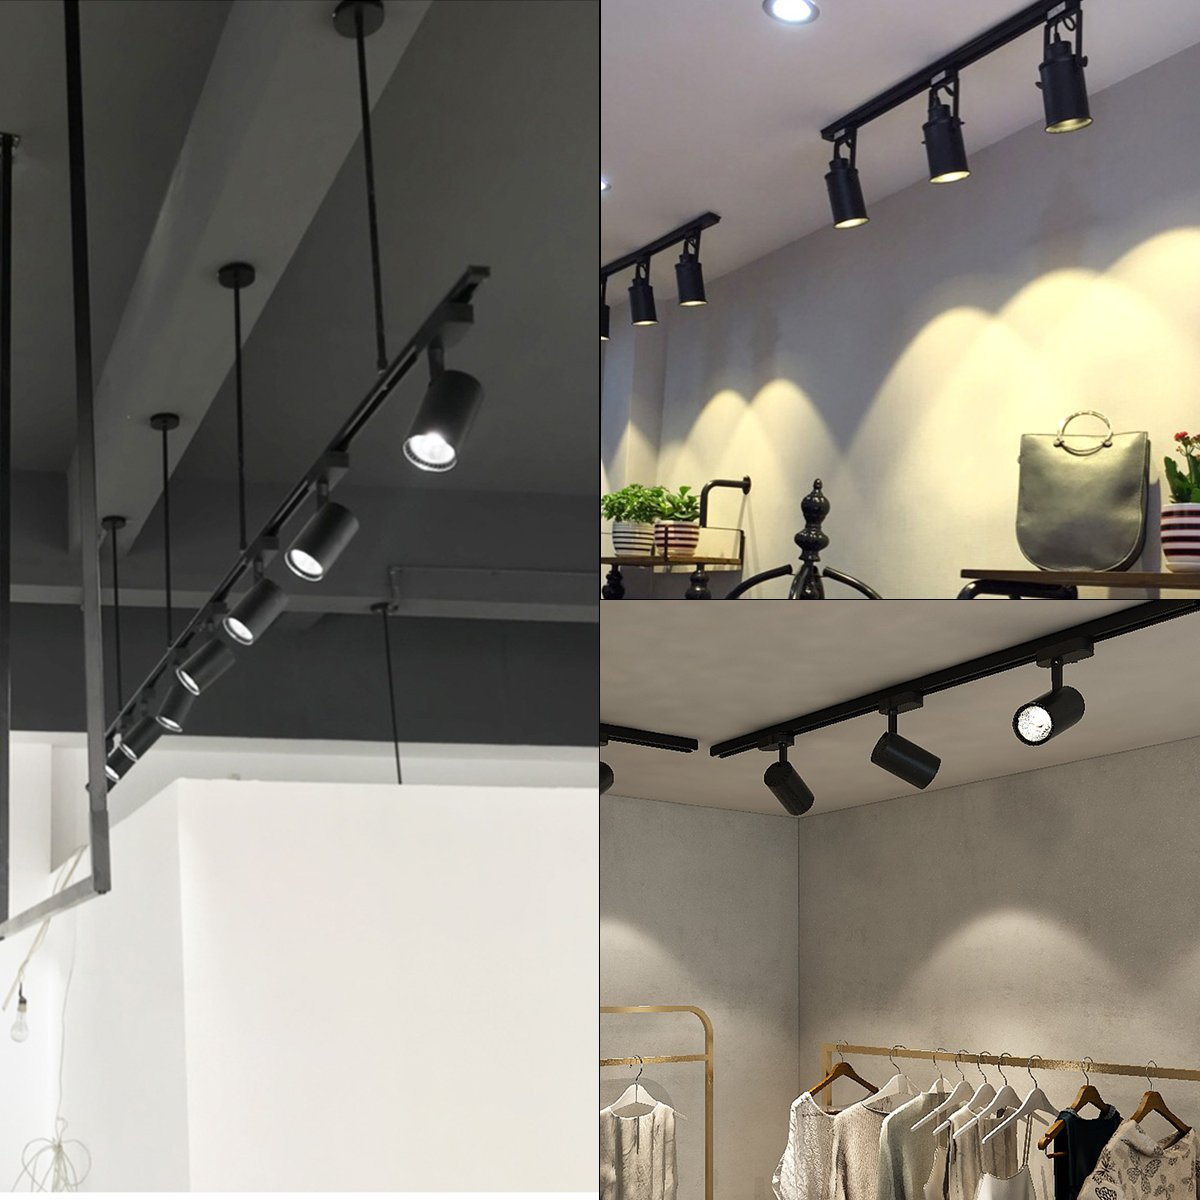 Betorcy 36W LED Track Lighting Heads, Direct-Lighting Fixtures, (CRI 90+) High Color Rendering, Daylight White 4000K, Designed for Home, Showroom, Shop, Art Lighting by Betorcy (Image #5)